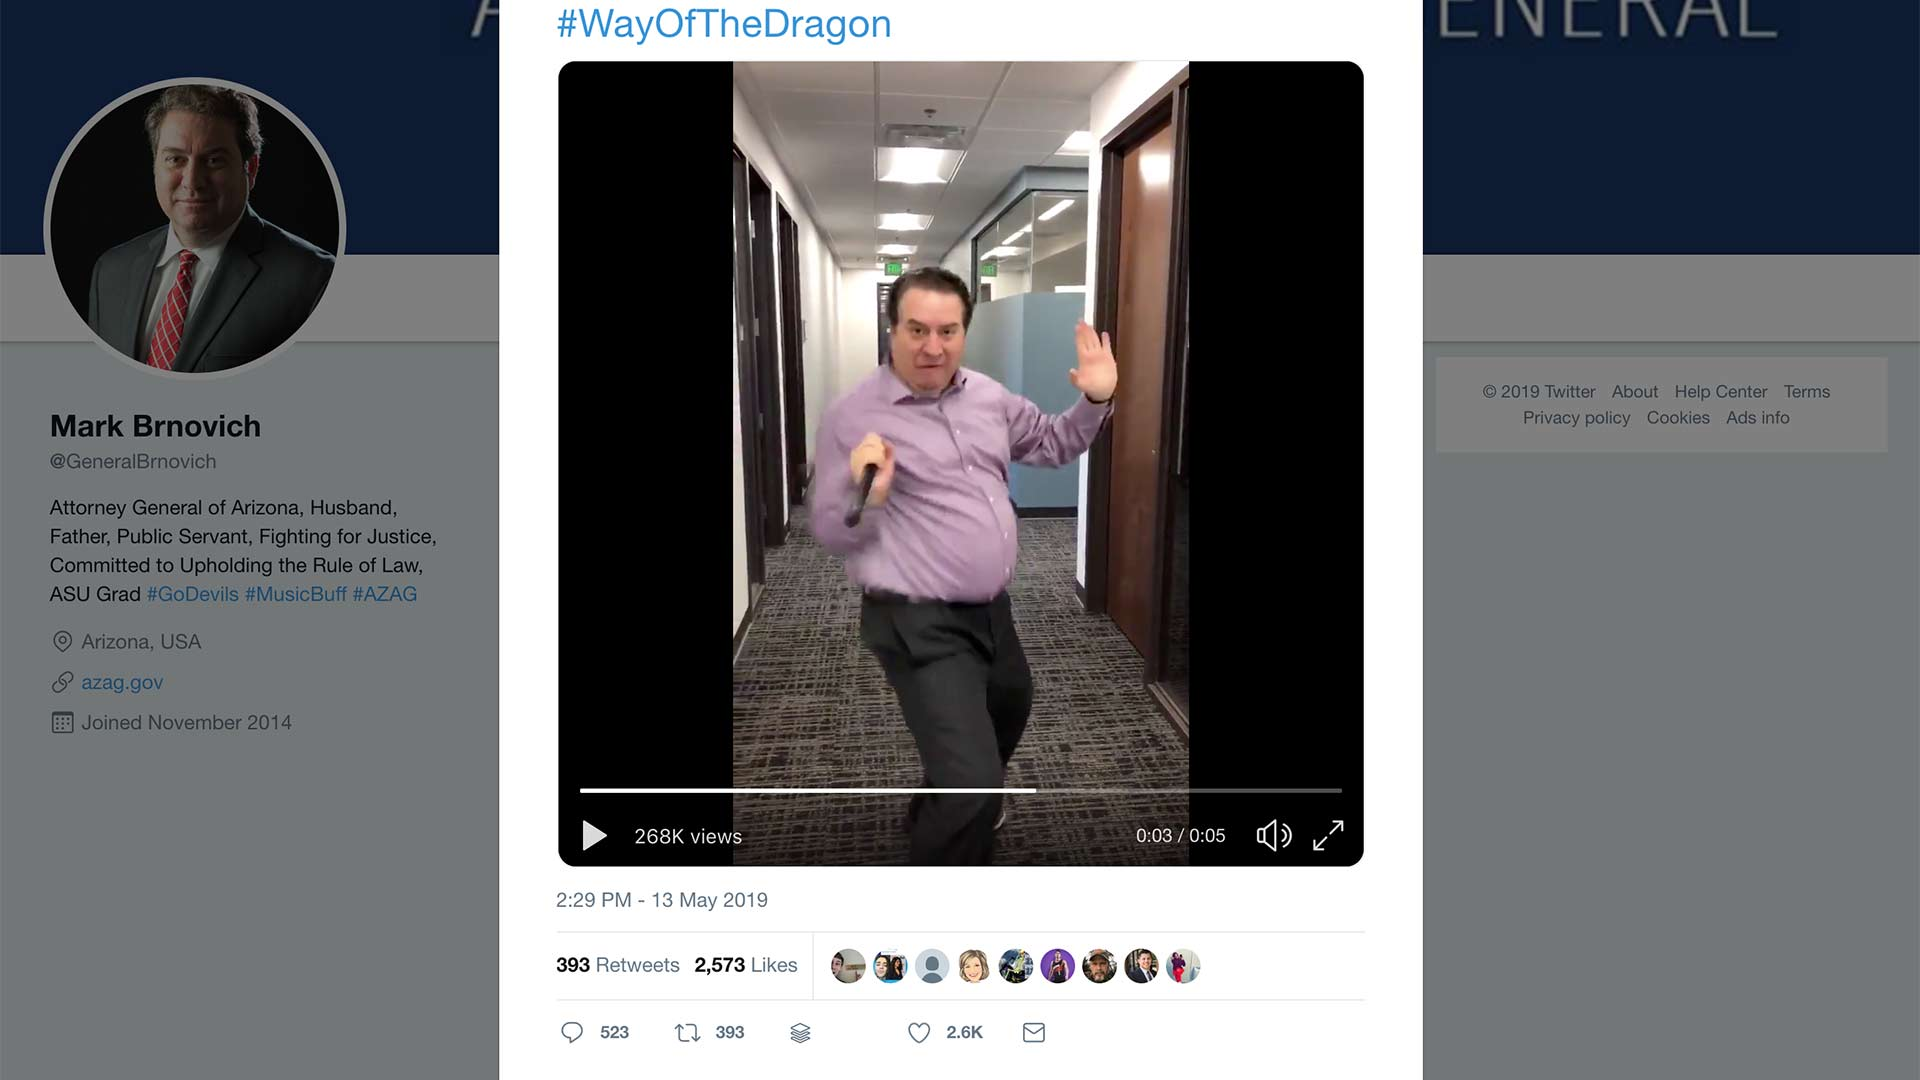 Screenshot of a video posted on Twitter of Arizona Attorney General Mark Brnovich using nunchucks.